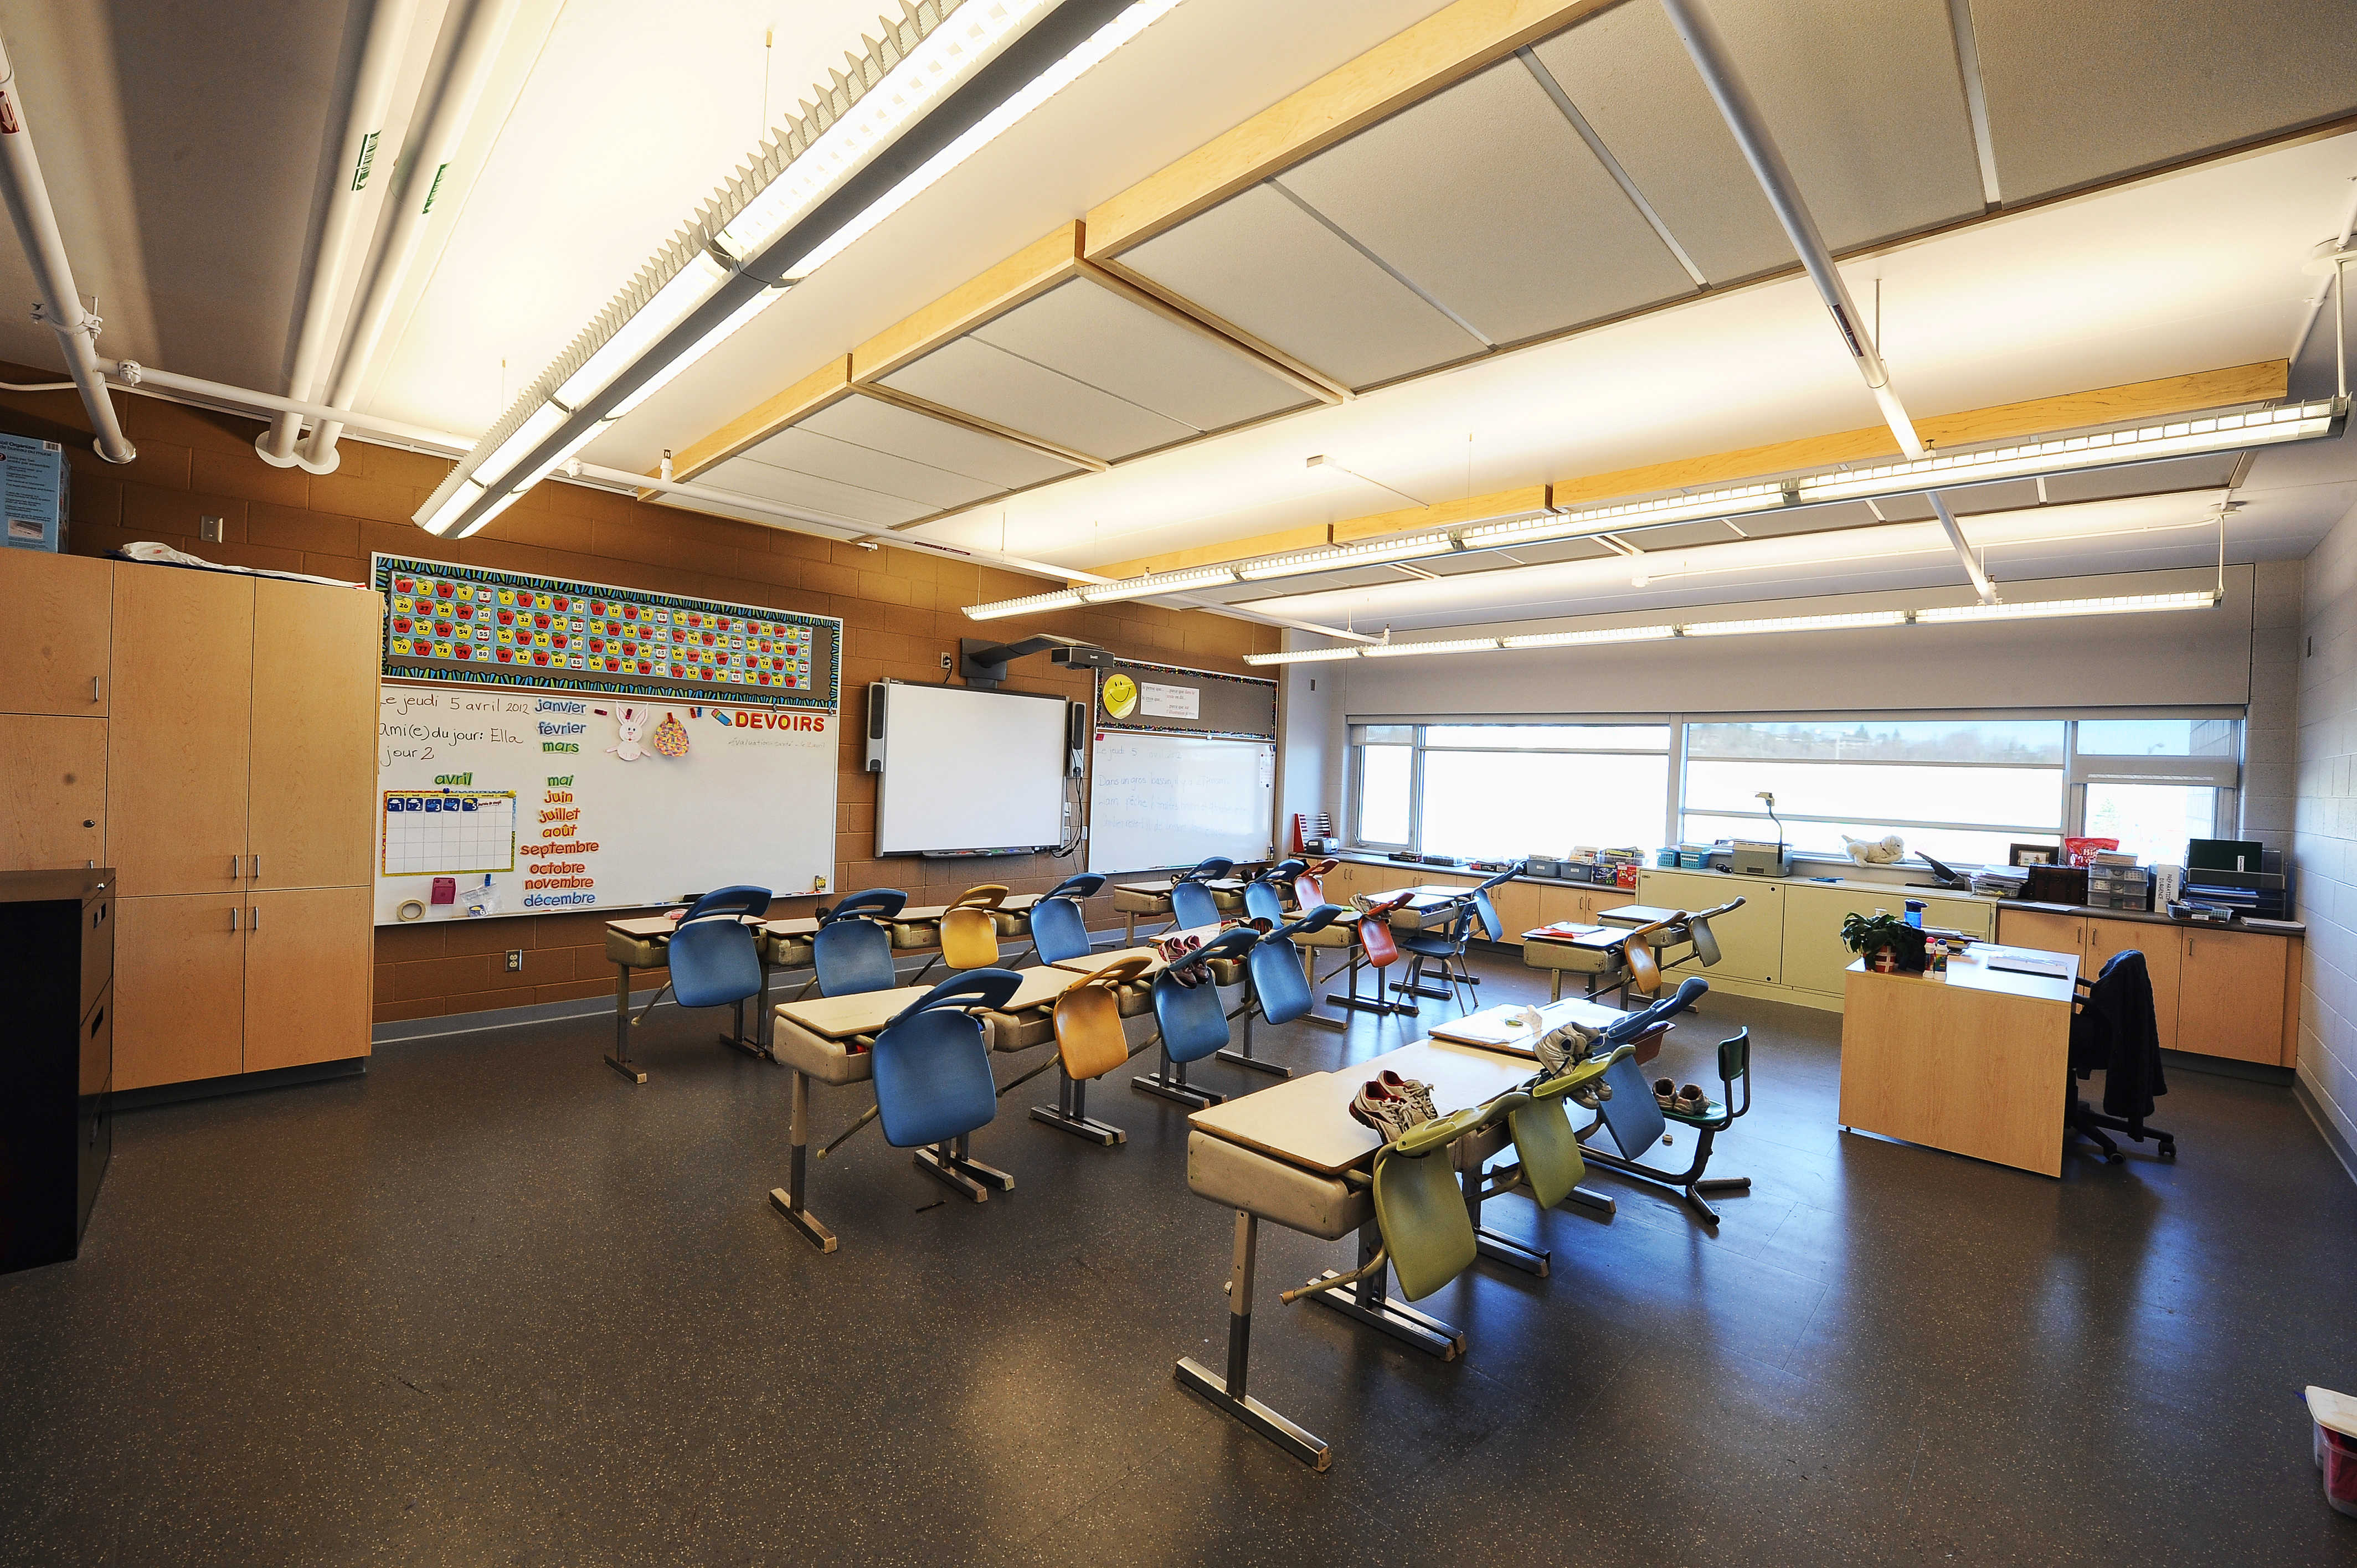 Ecole St. Denis rubber flooring for primary schools